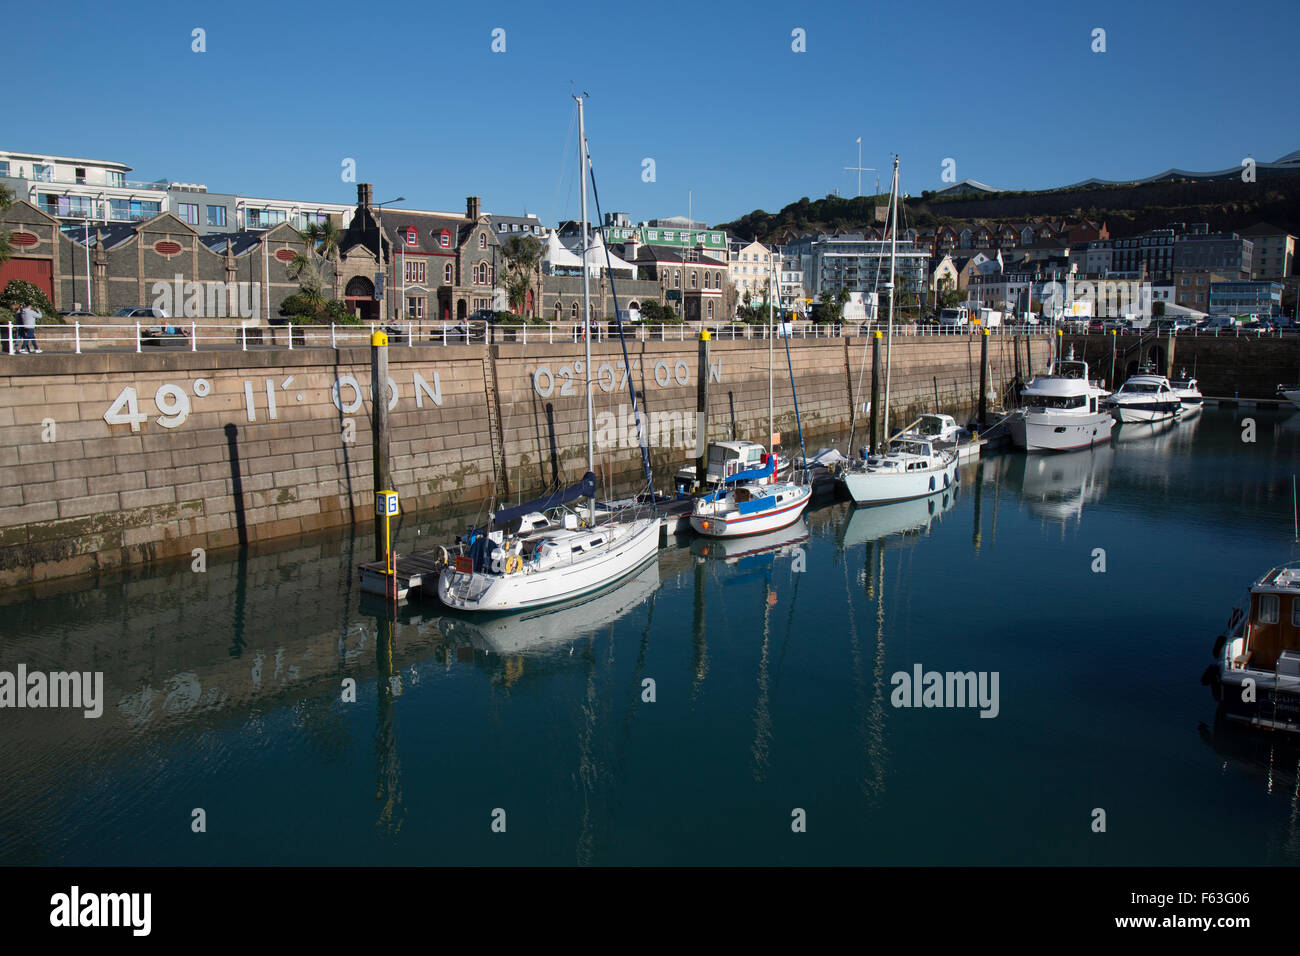 St. Helier harbour, on the channel island of Jersey. - Stock Image